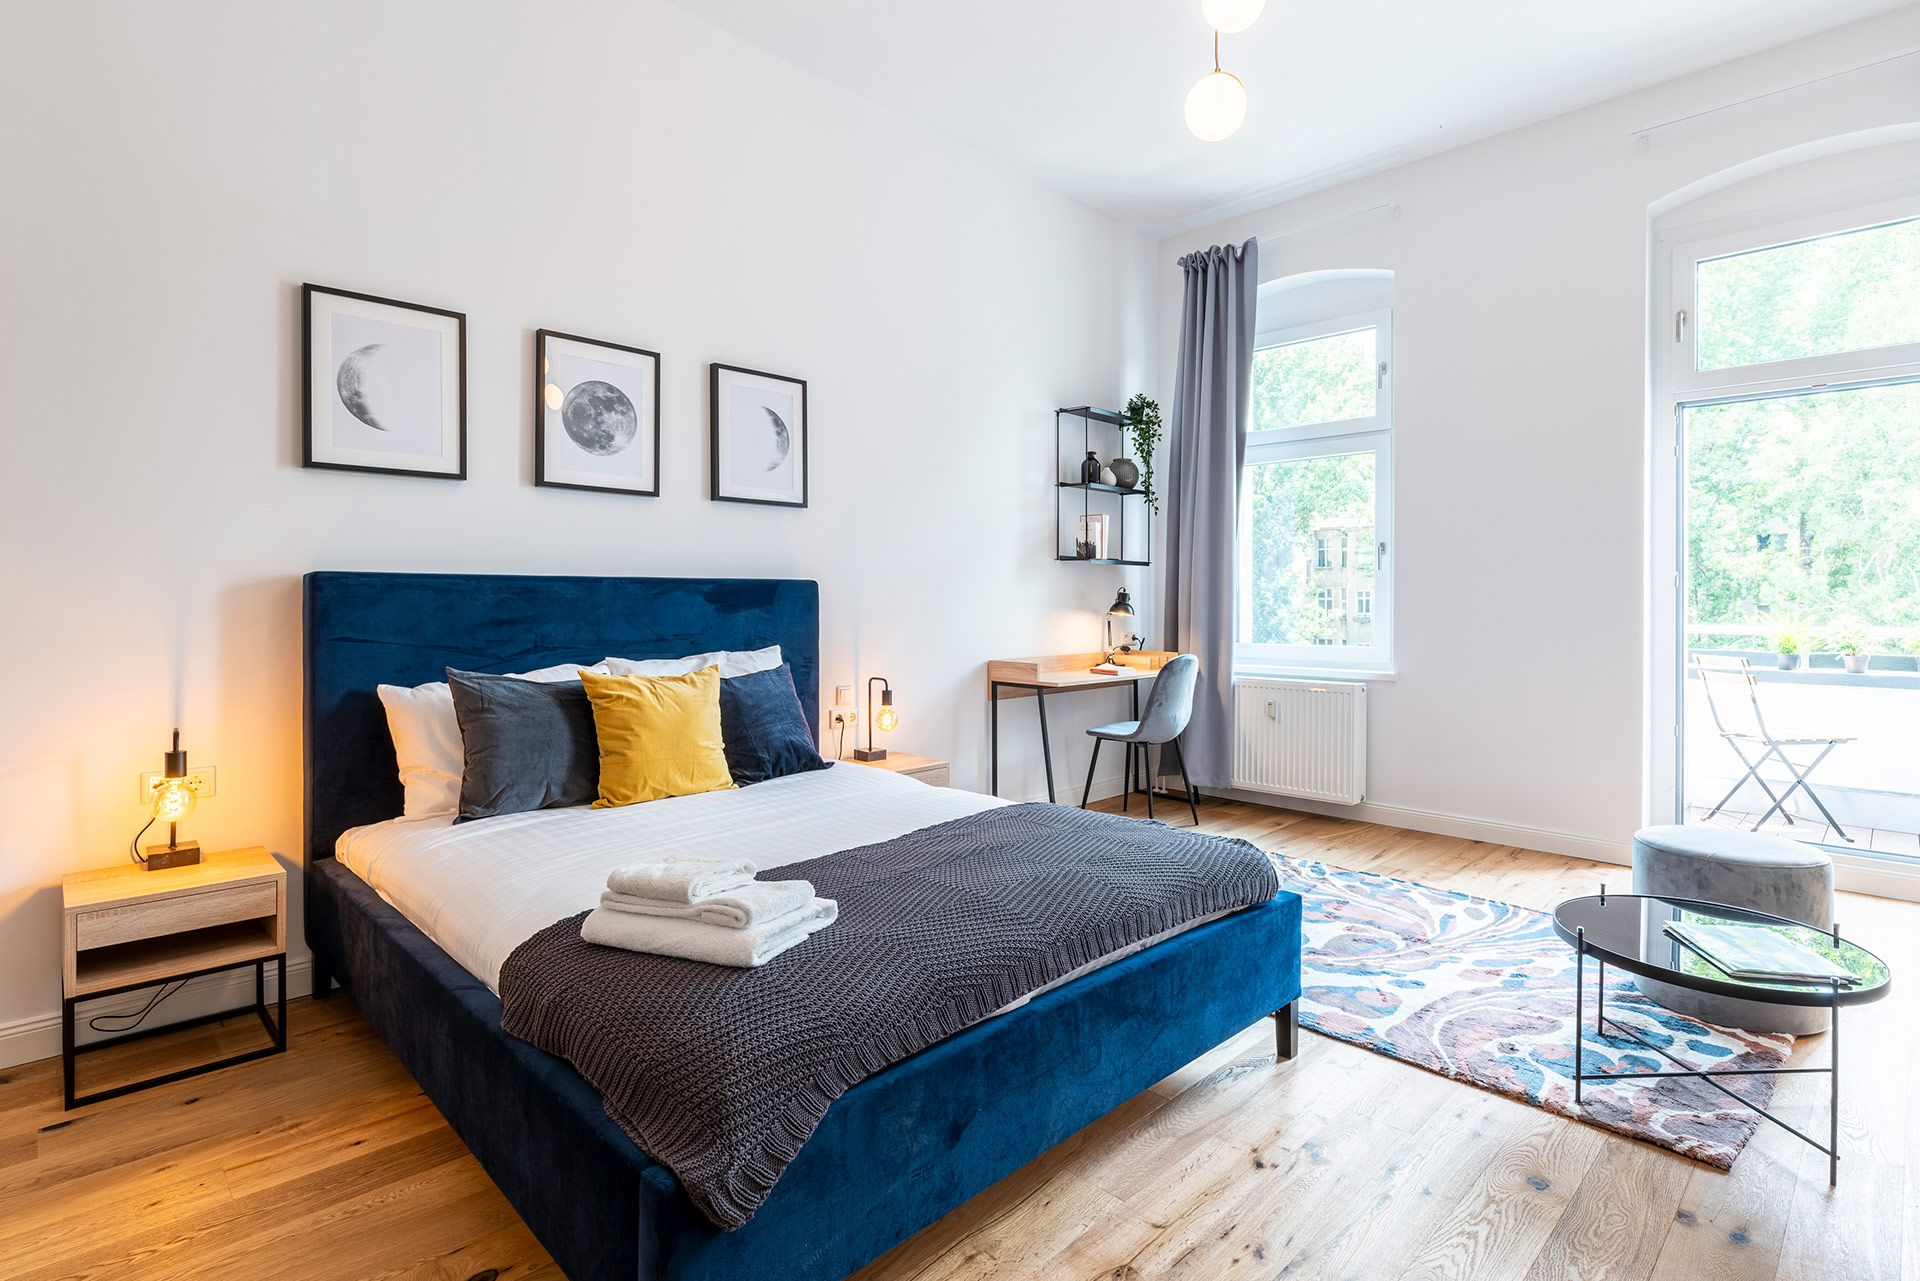 Private Room - Large apartment to rent in Berlin STRA-MARK-1113-1